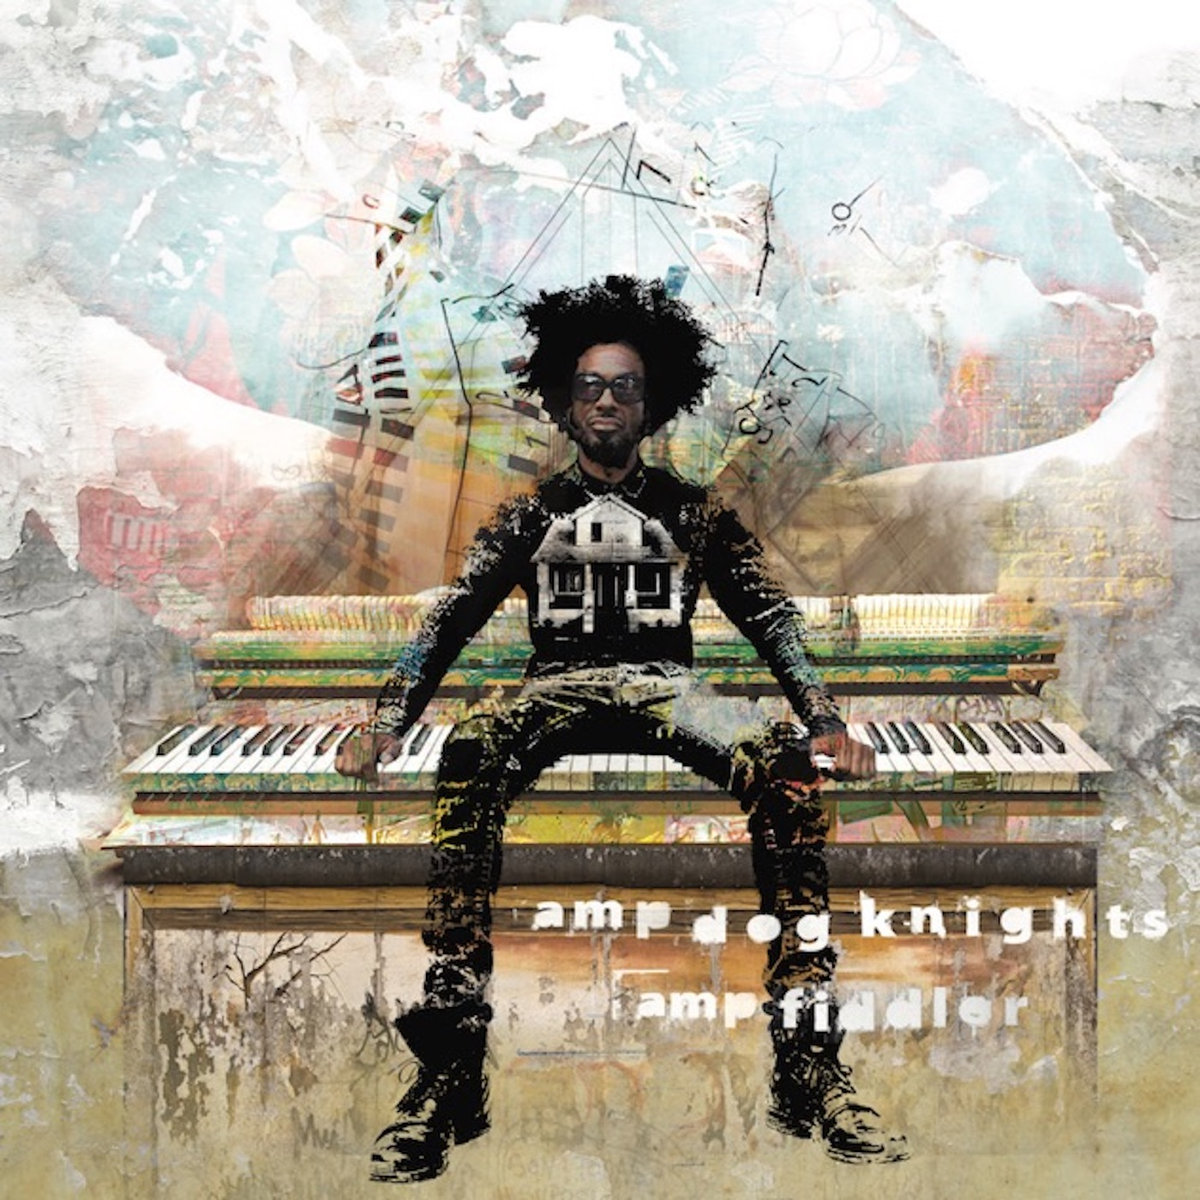 """Album of the Day: Amp Fiddler, """"Amp Dog Knights"""" « Bandcamp Daily"""